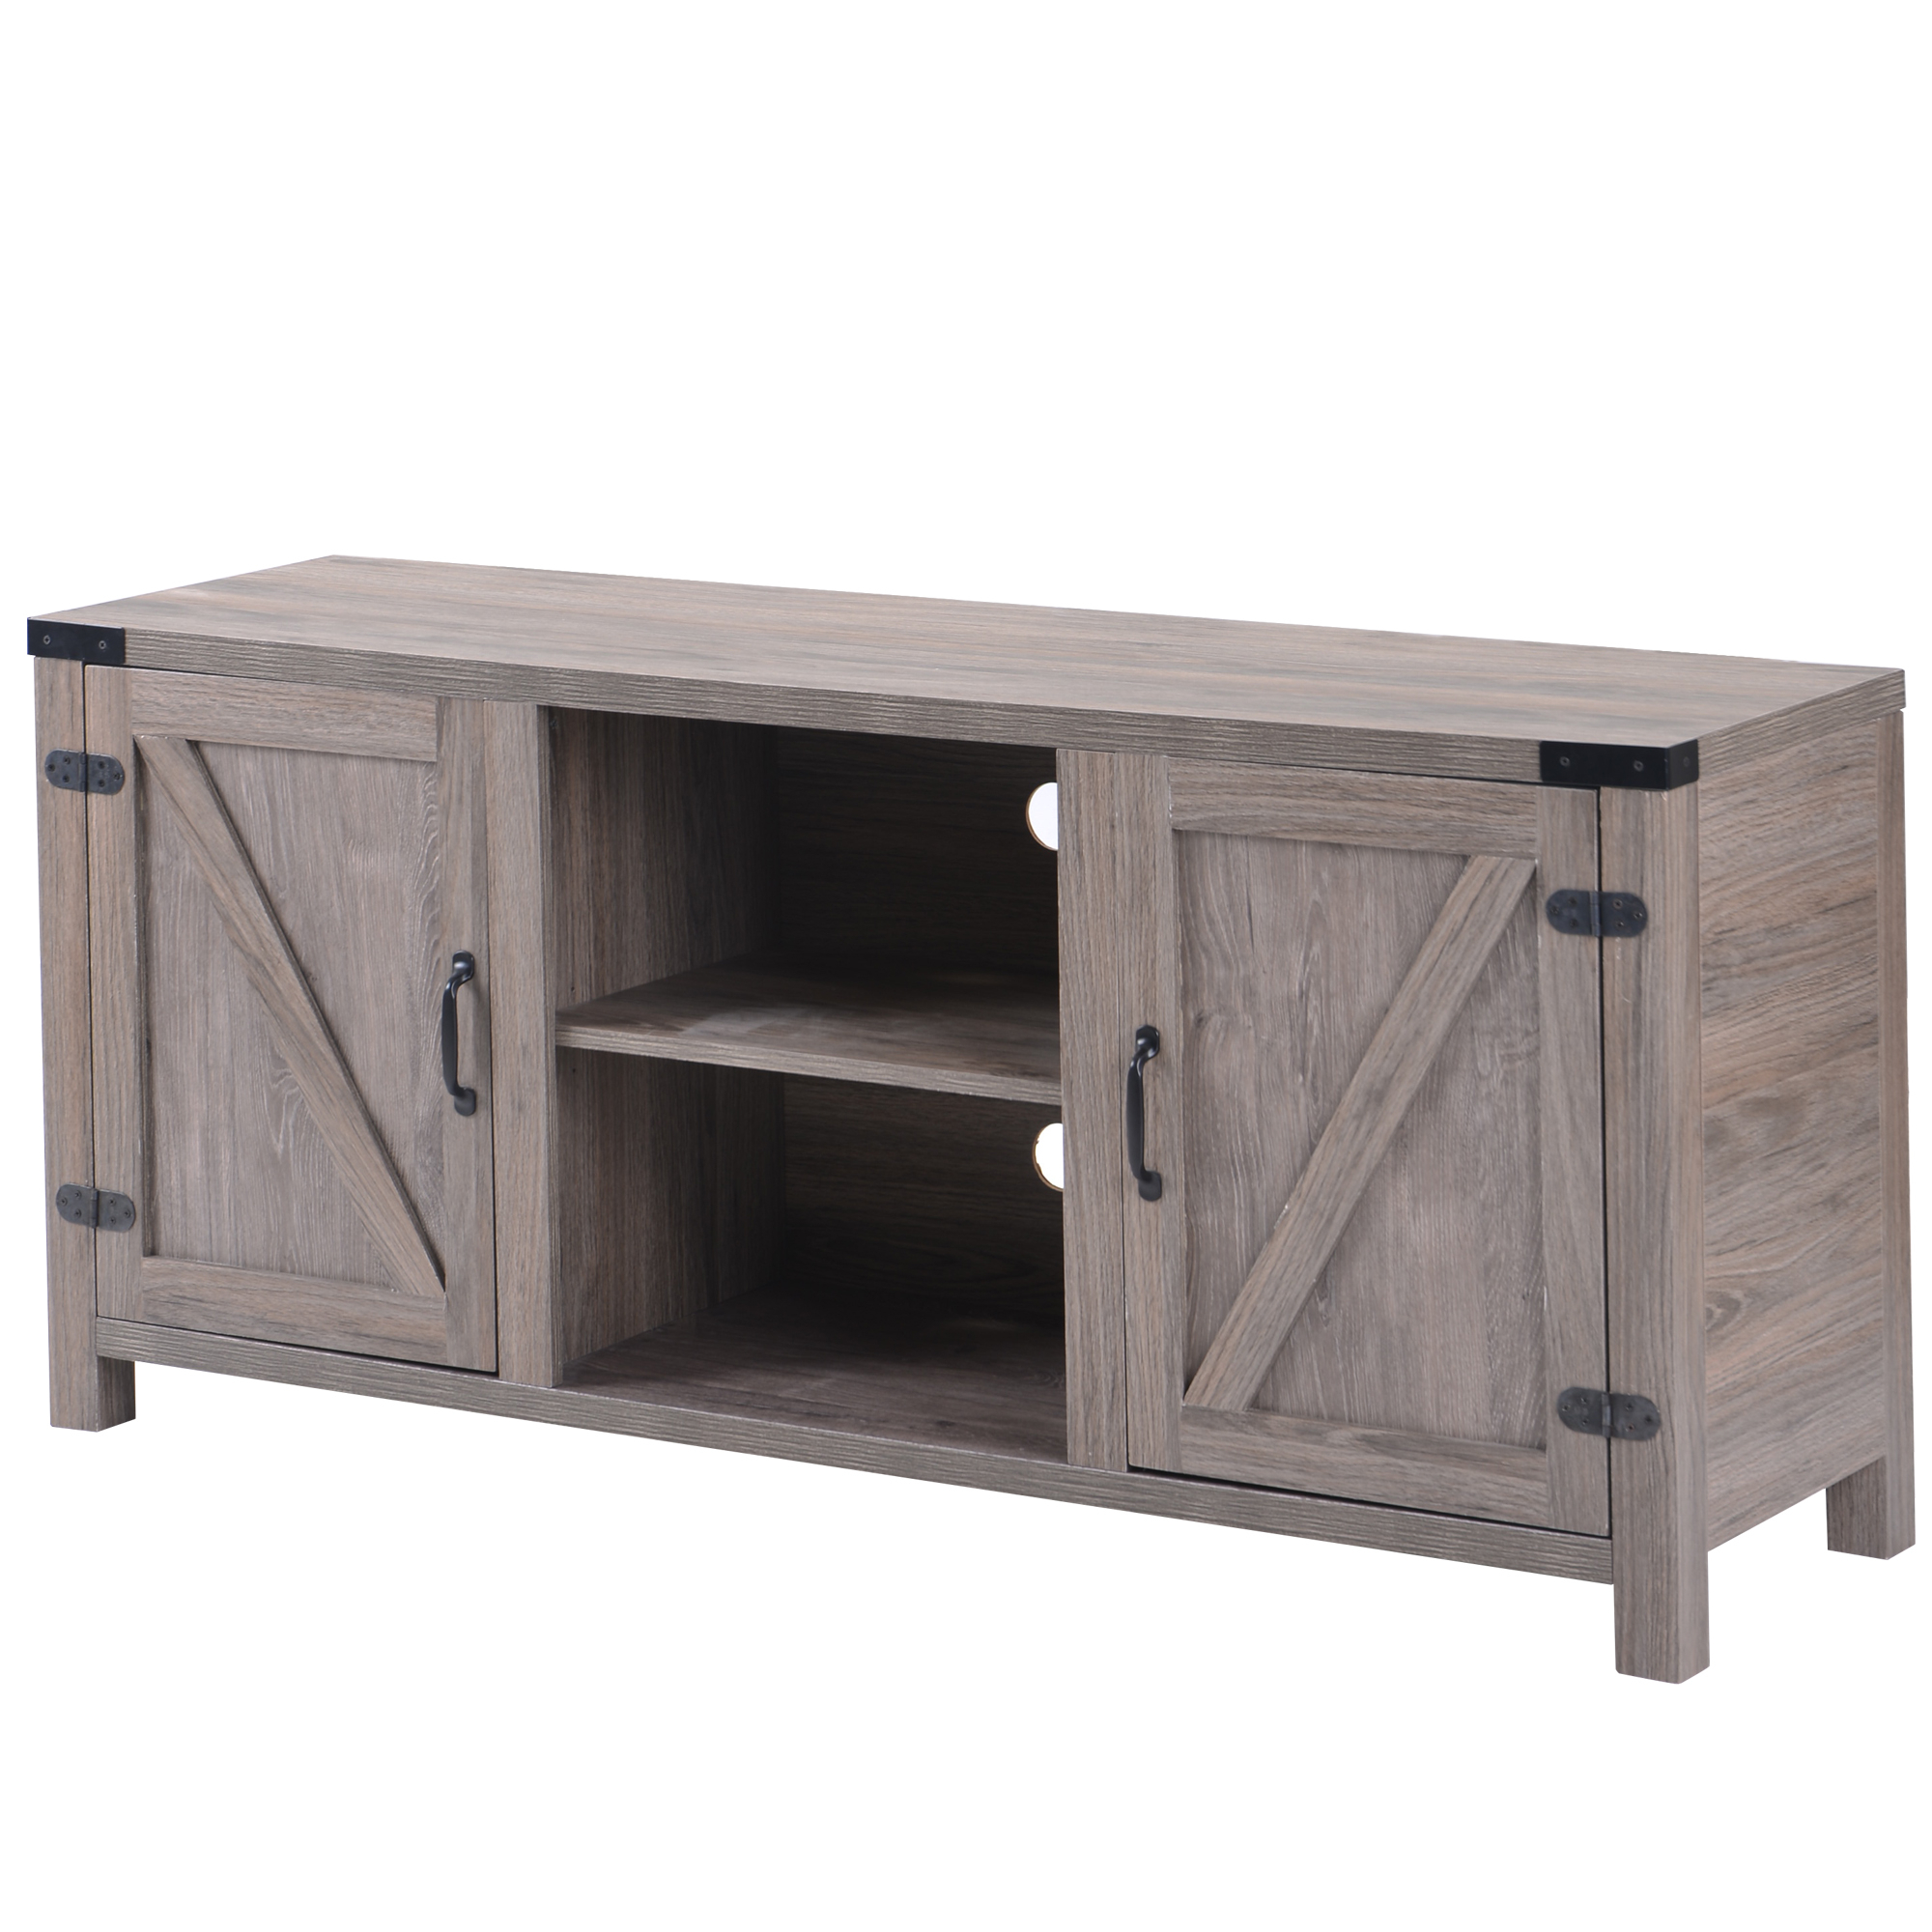 """Clearance! 58'' Farmhouse Tv Stands For Tvs Up To 65 Throughout Tv Stands With Cable Management For Tvs Up To 55"""" (View 18 of 20)"""